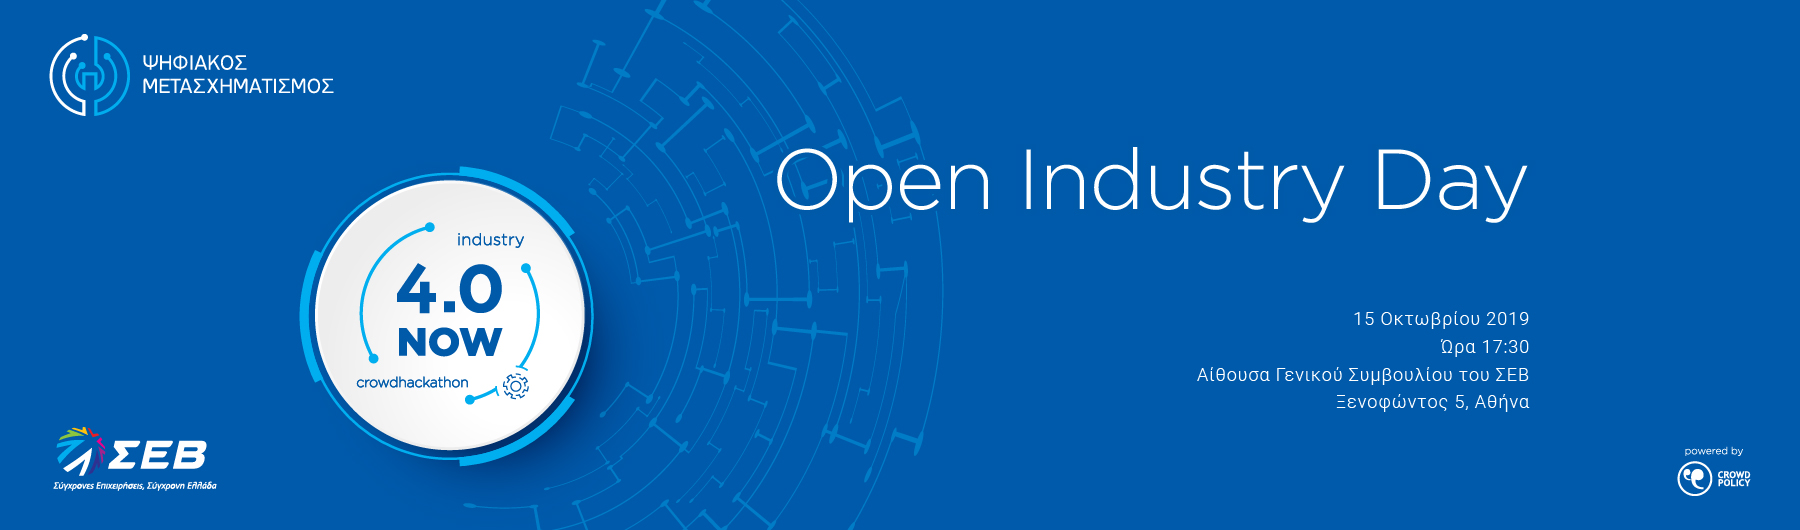 Open Industry Day